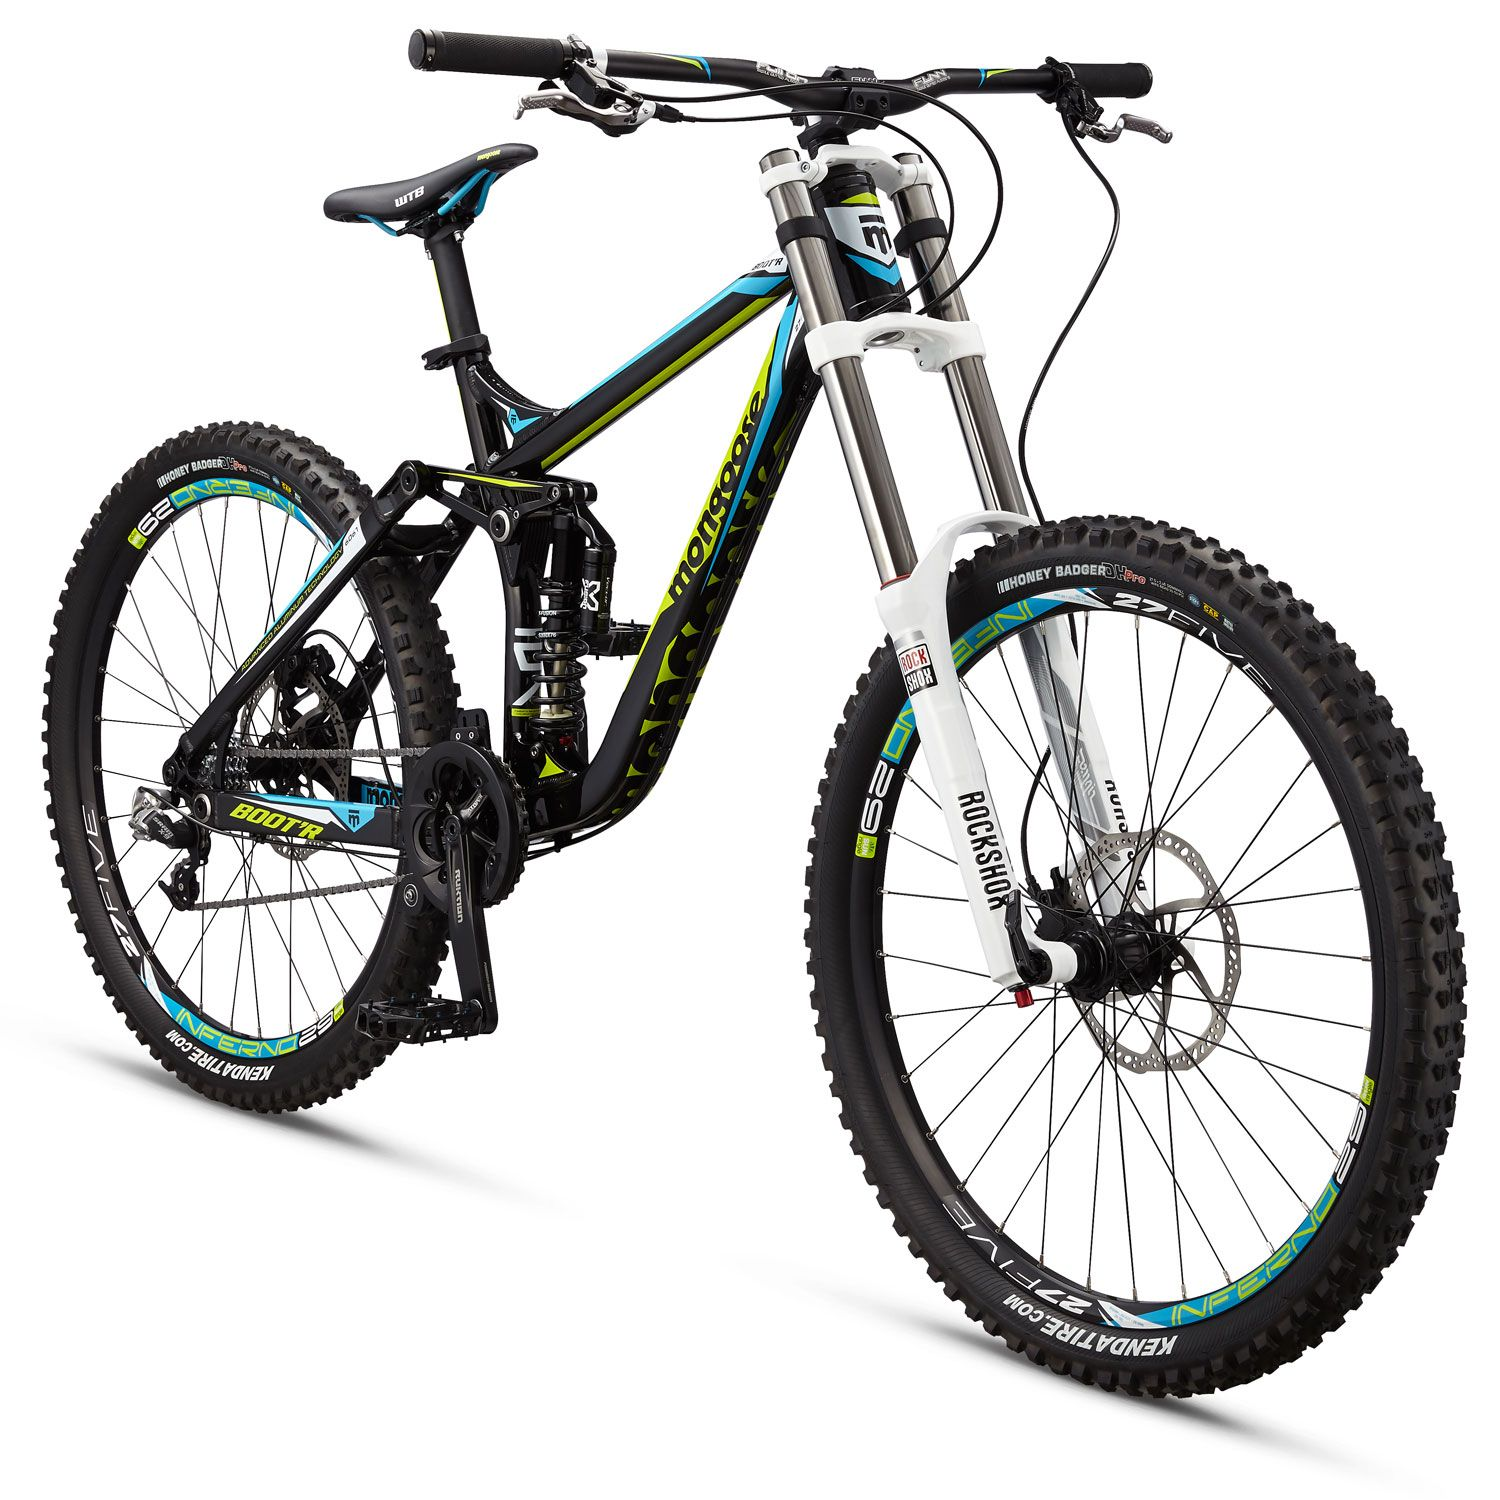 5377cd8a1c6 <p> The Mongoose Boot'r brings something long missing from the world of  downhill bicycles -- value. With an all-aluminum frame and utilizing the  proven ...